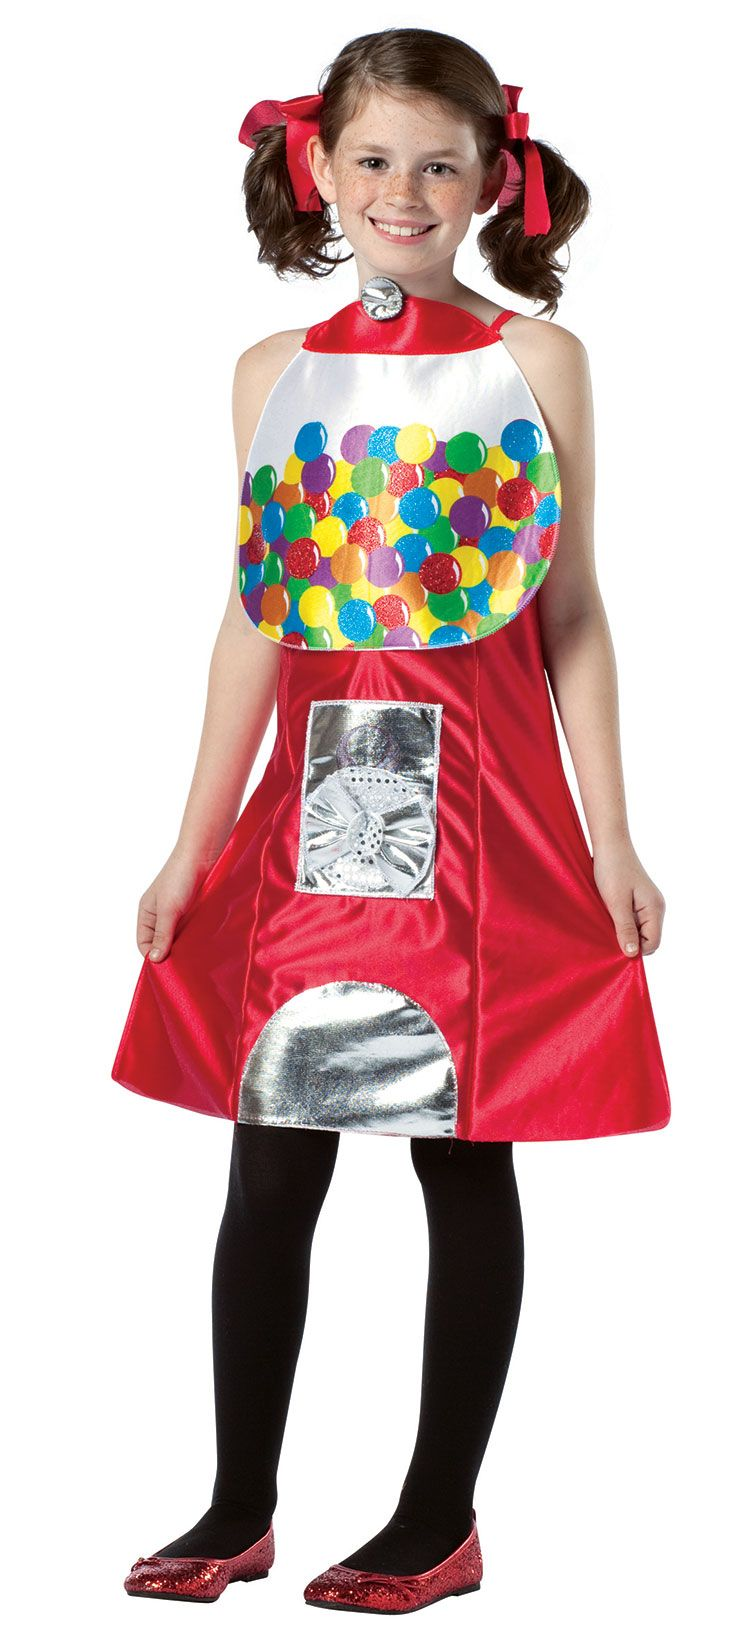 Gumball machine girls costume funny costumes halloween for Cool halloween costumes for kids girls